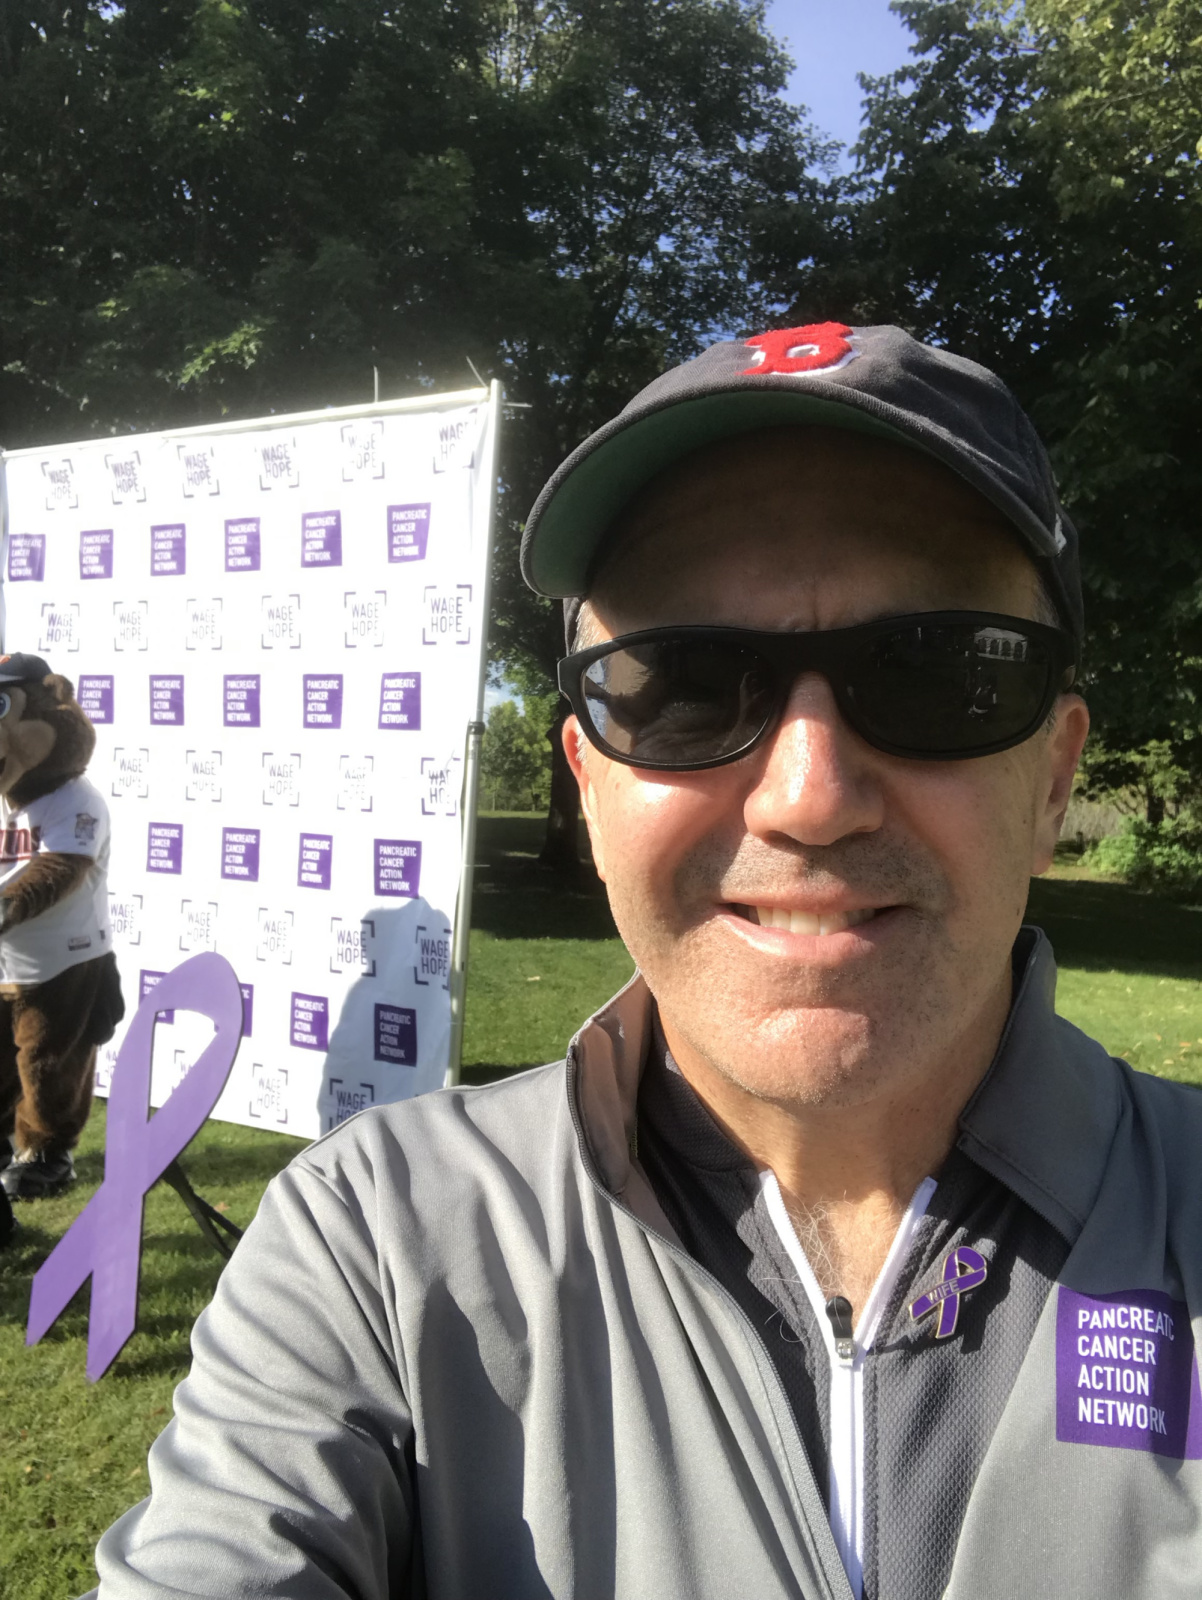 Facebook photo after the PanCan ride.